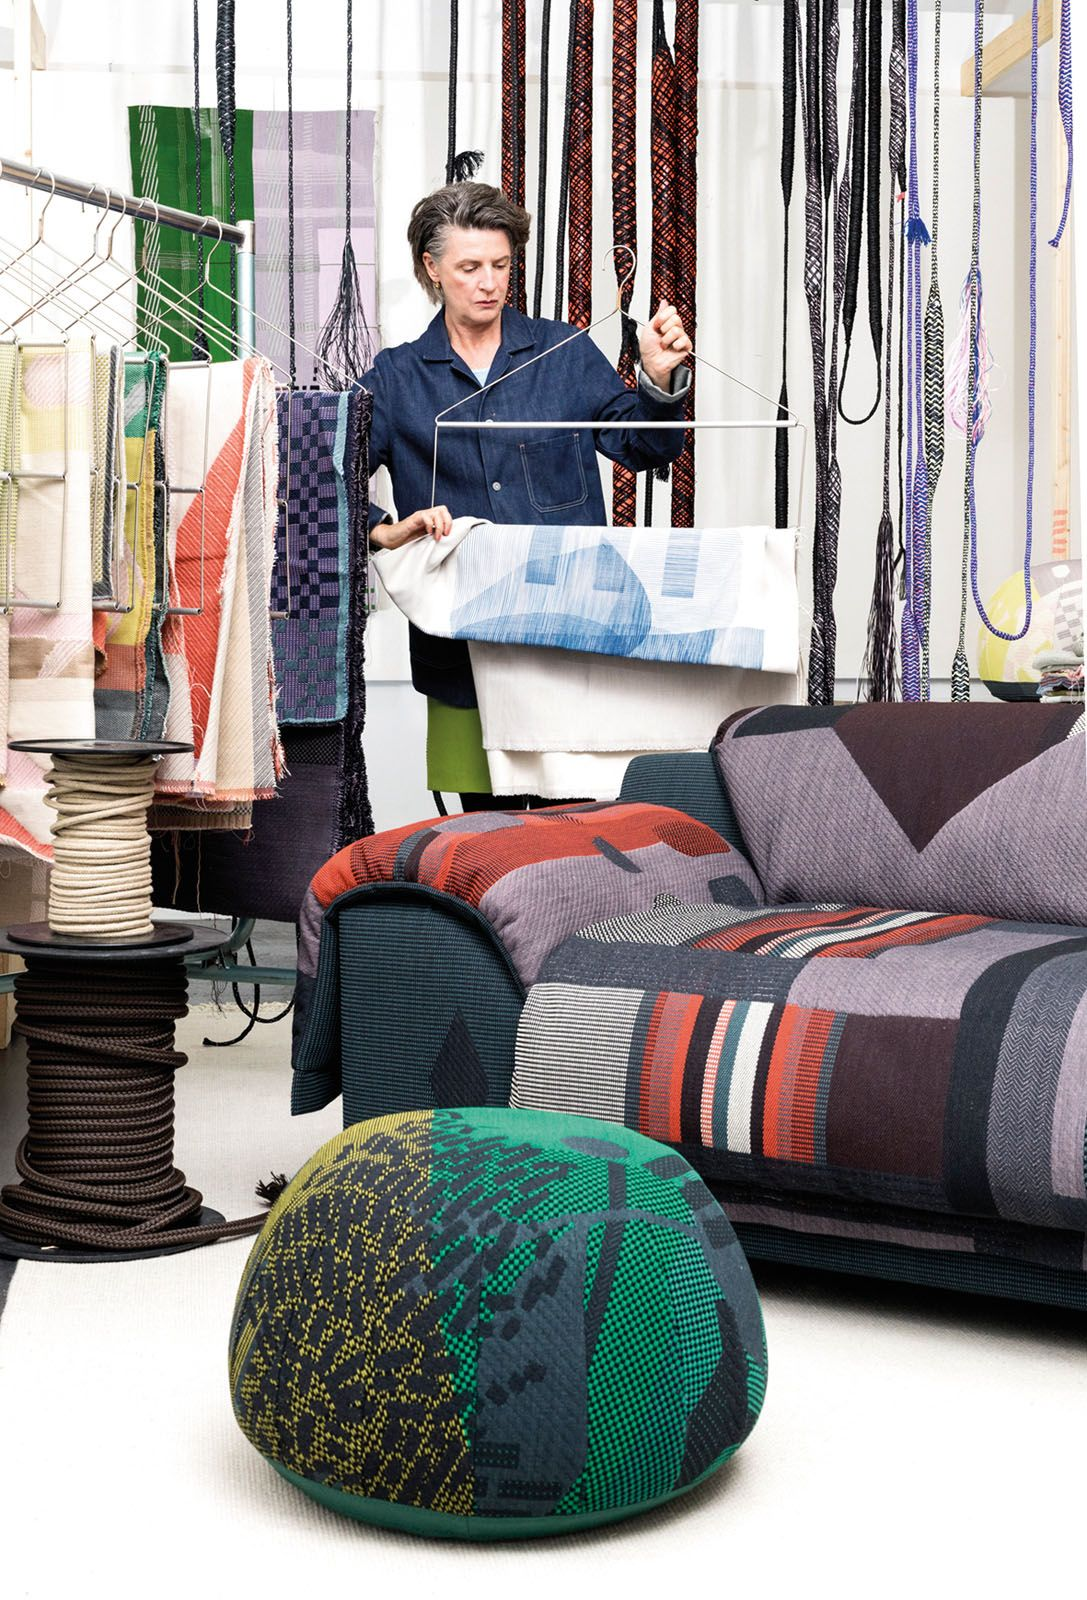 Dutch designer Hella Jongerius peruses the vibrant array of textiles used for the Vlinder sofa from Vitra